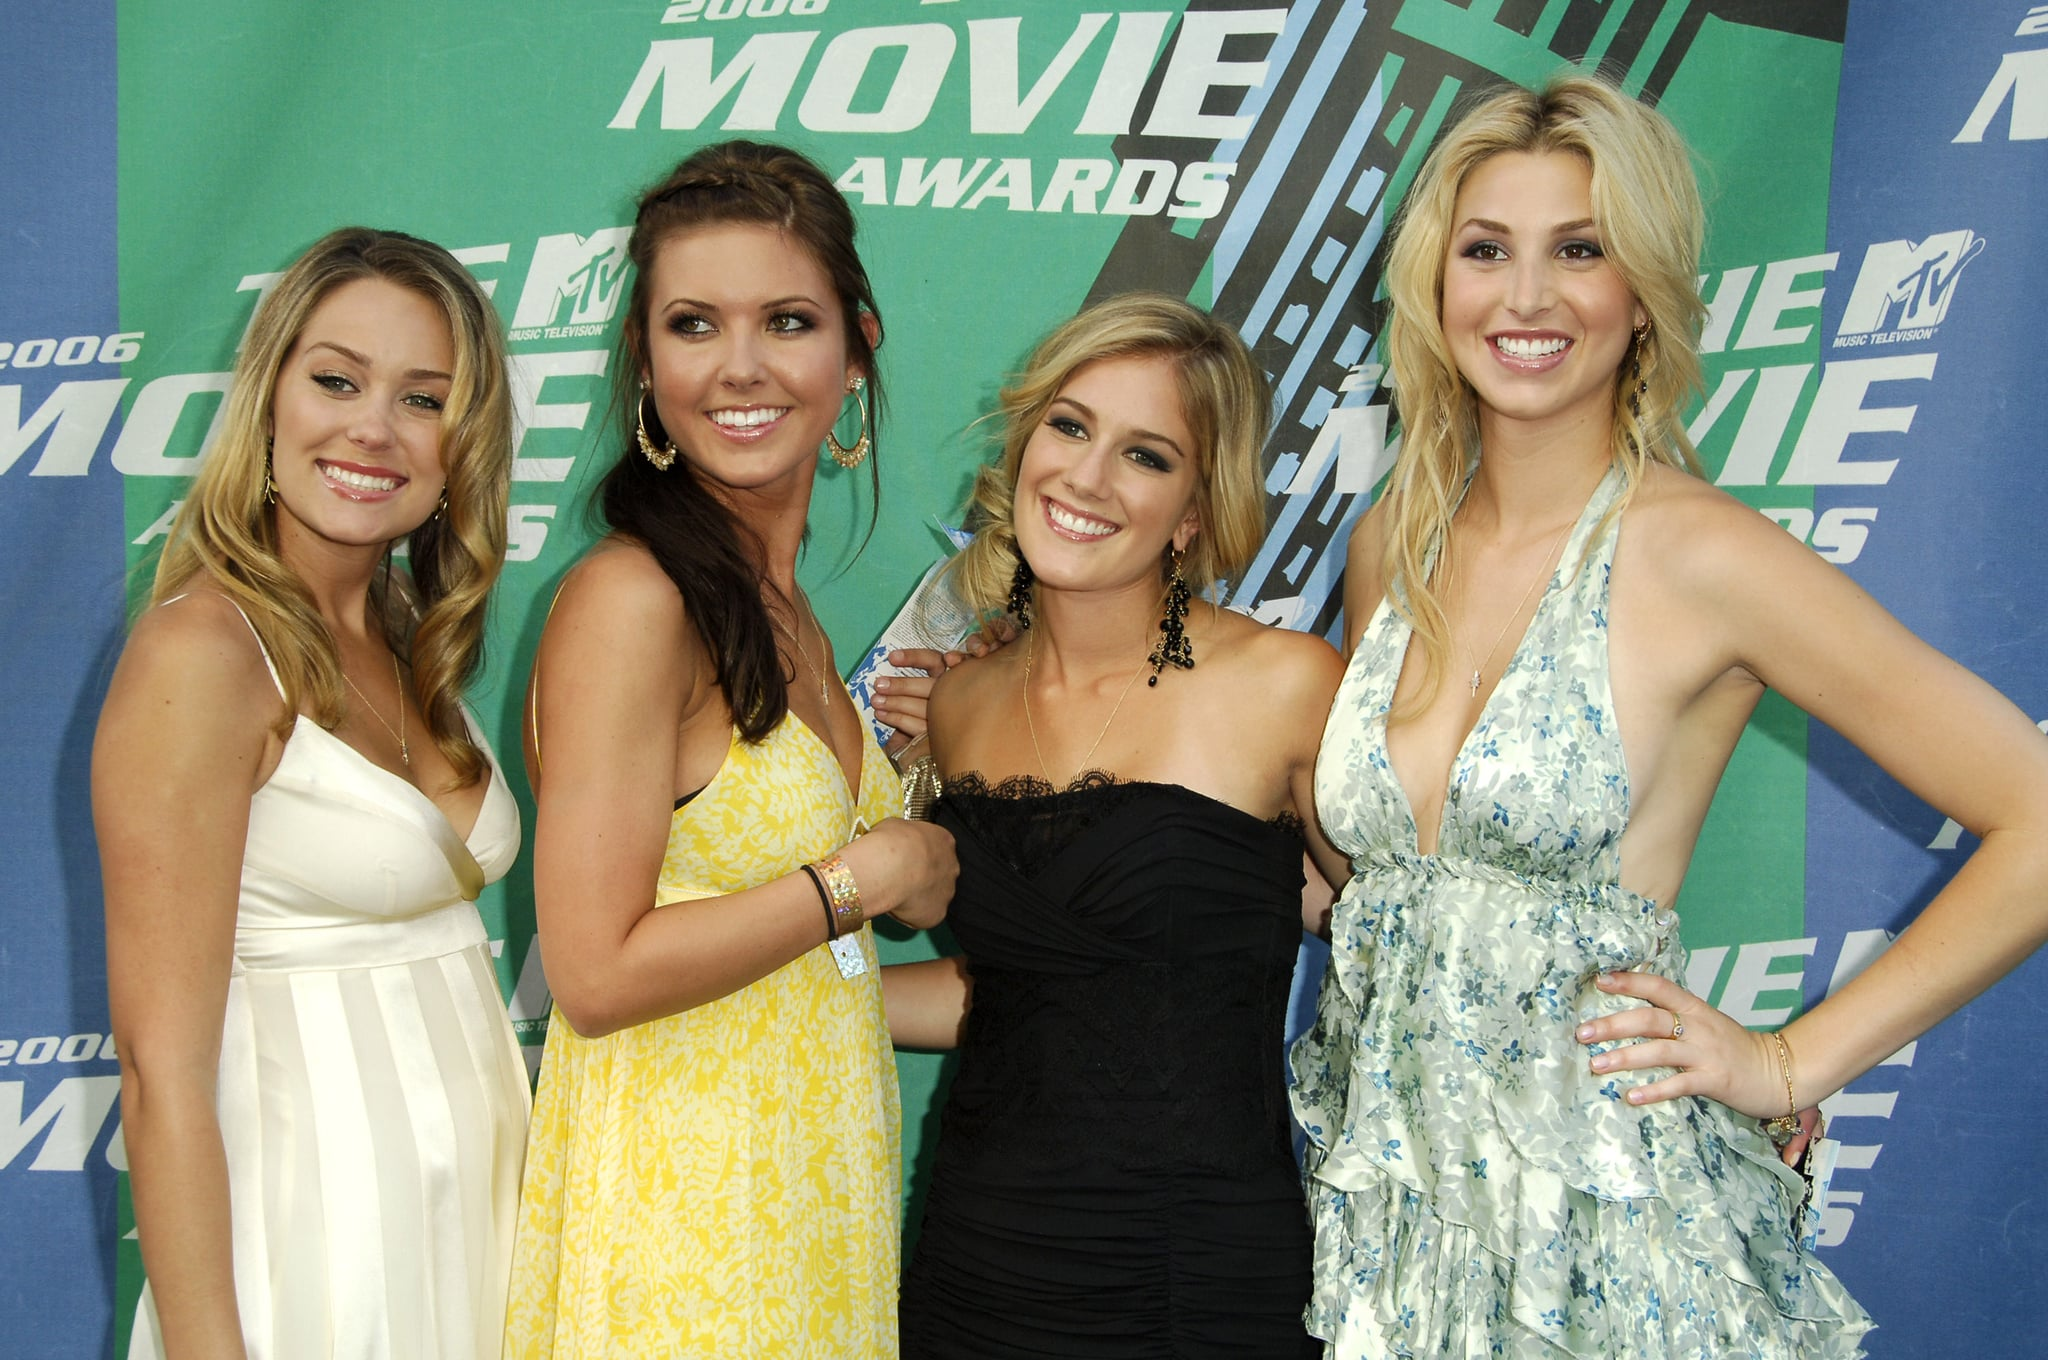 Lauren Conrad, Audrina Patridge, Heidi Montag and Whitney Port of